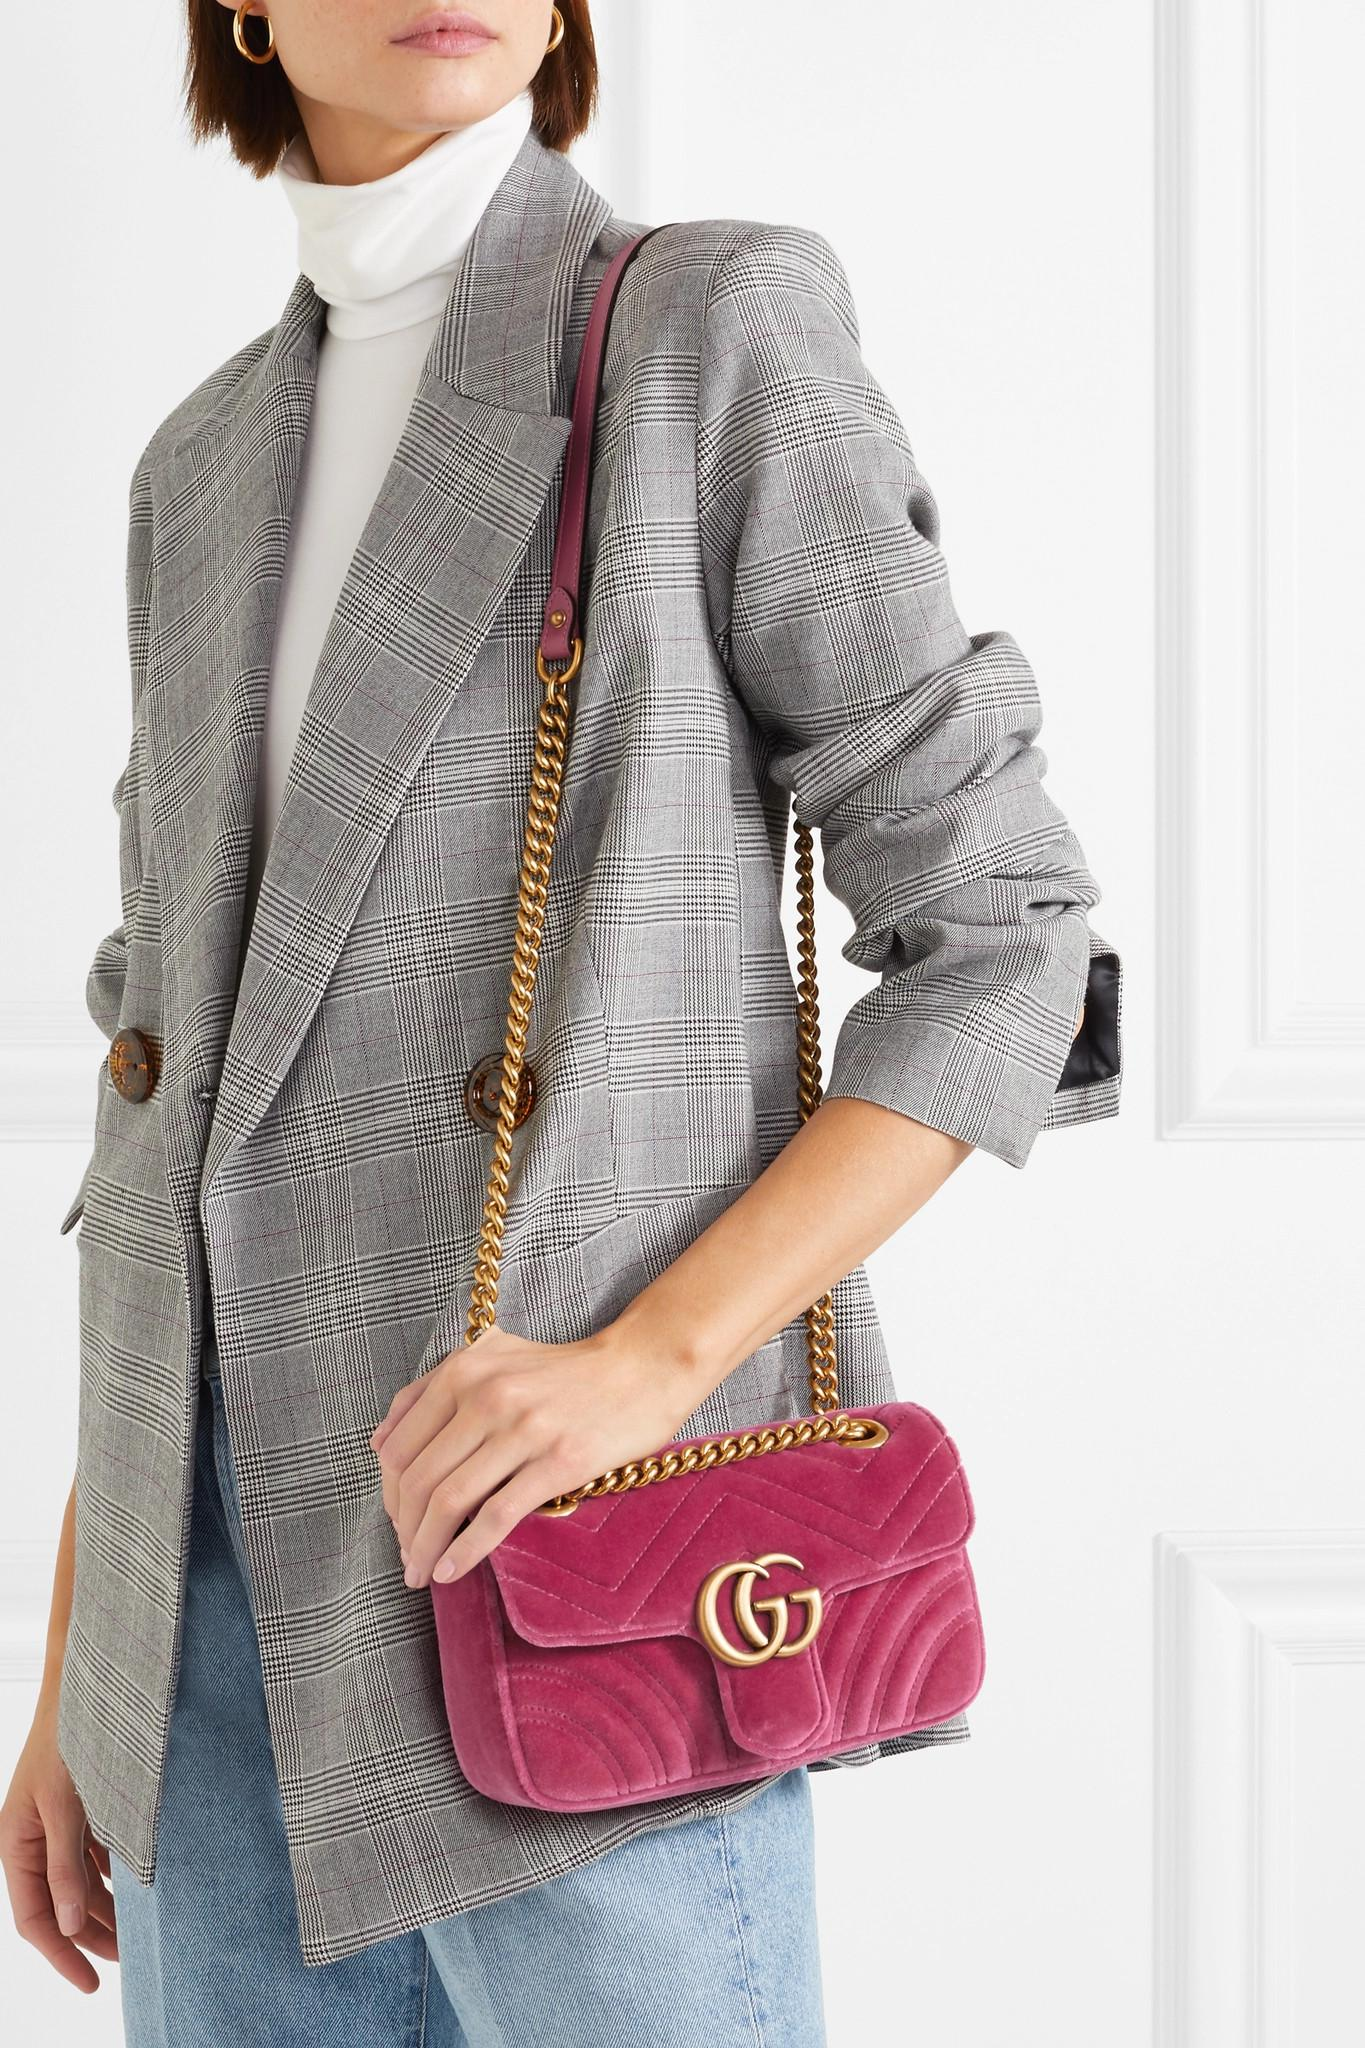 5182f22f1a3c72 ... Gg Marmont Mini Quilted Velvet Shoulder Bag - Lyst. View fullscreen